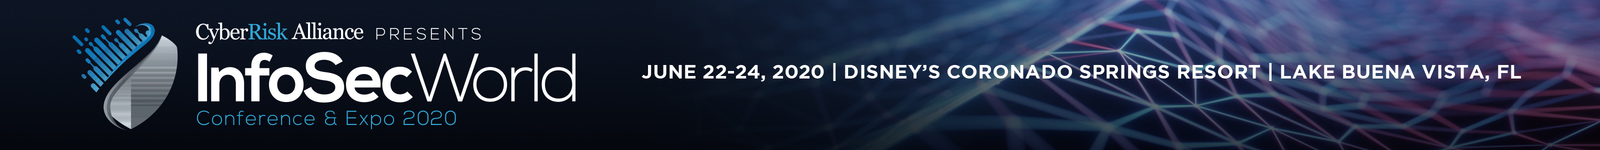 InfoSec World 2020 logo